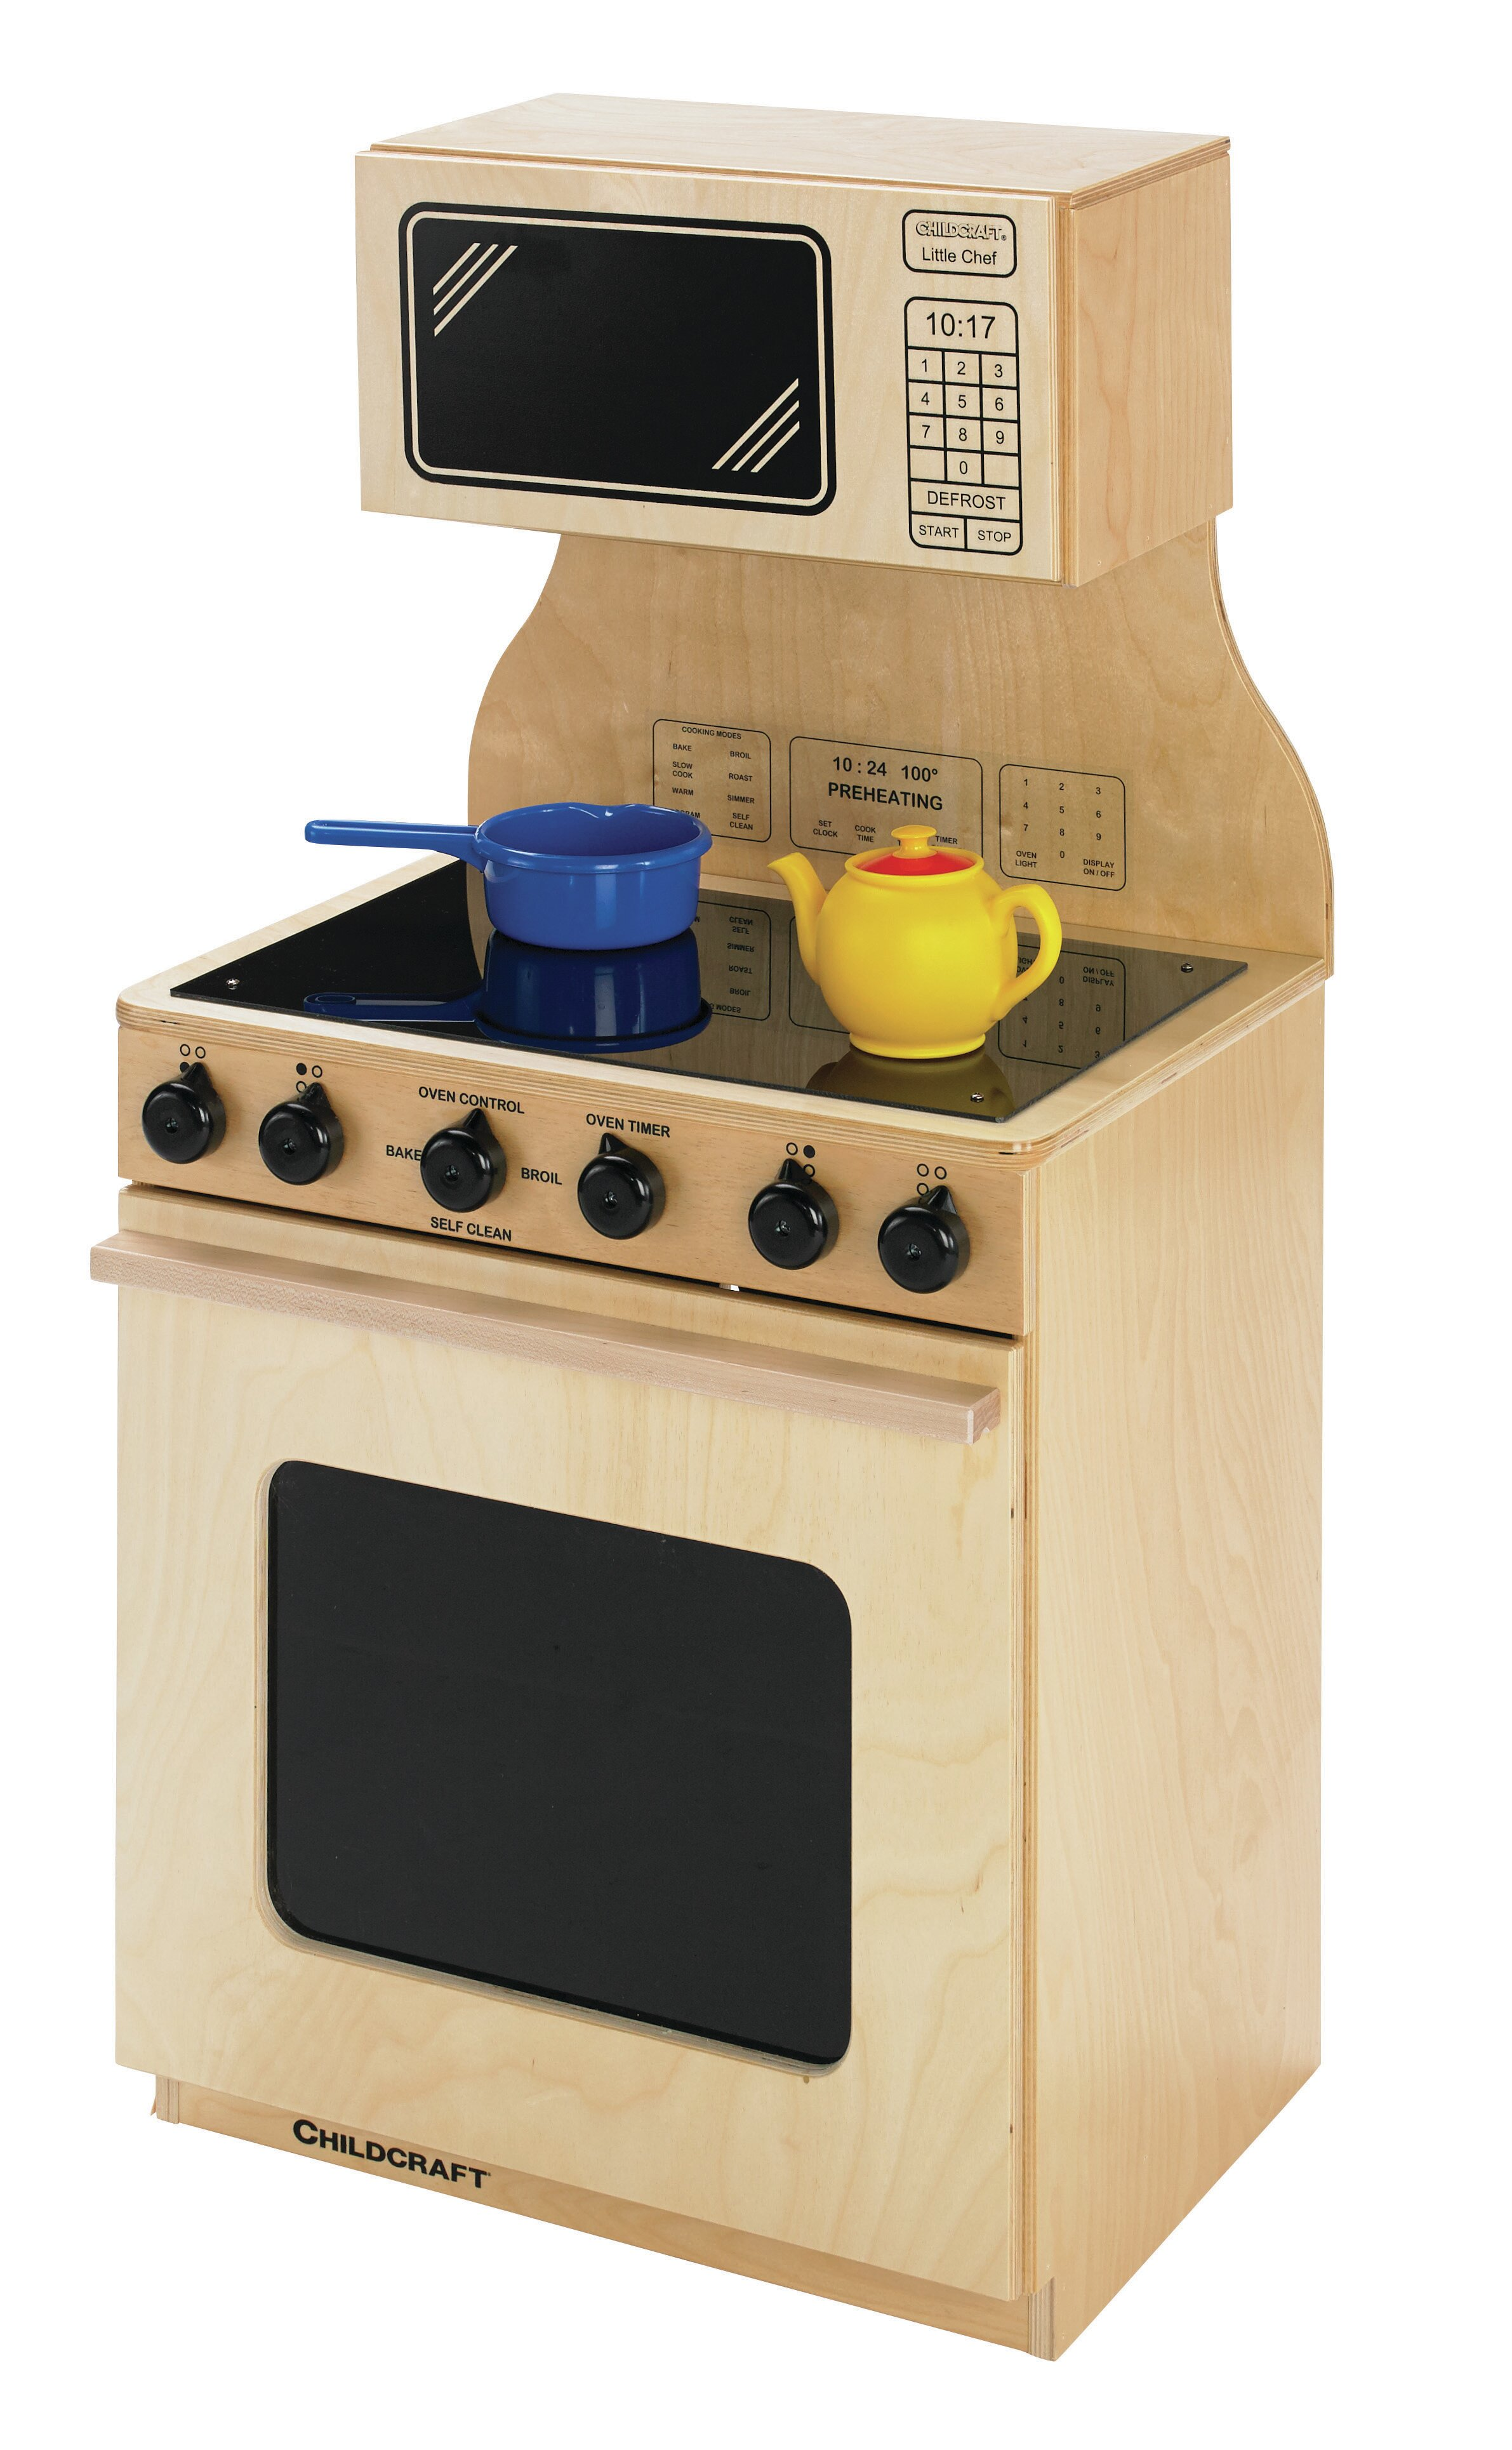 Childcraft Stove And Microwave Combo Kitchen Set Wayfair